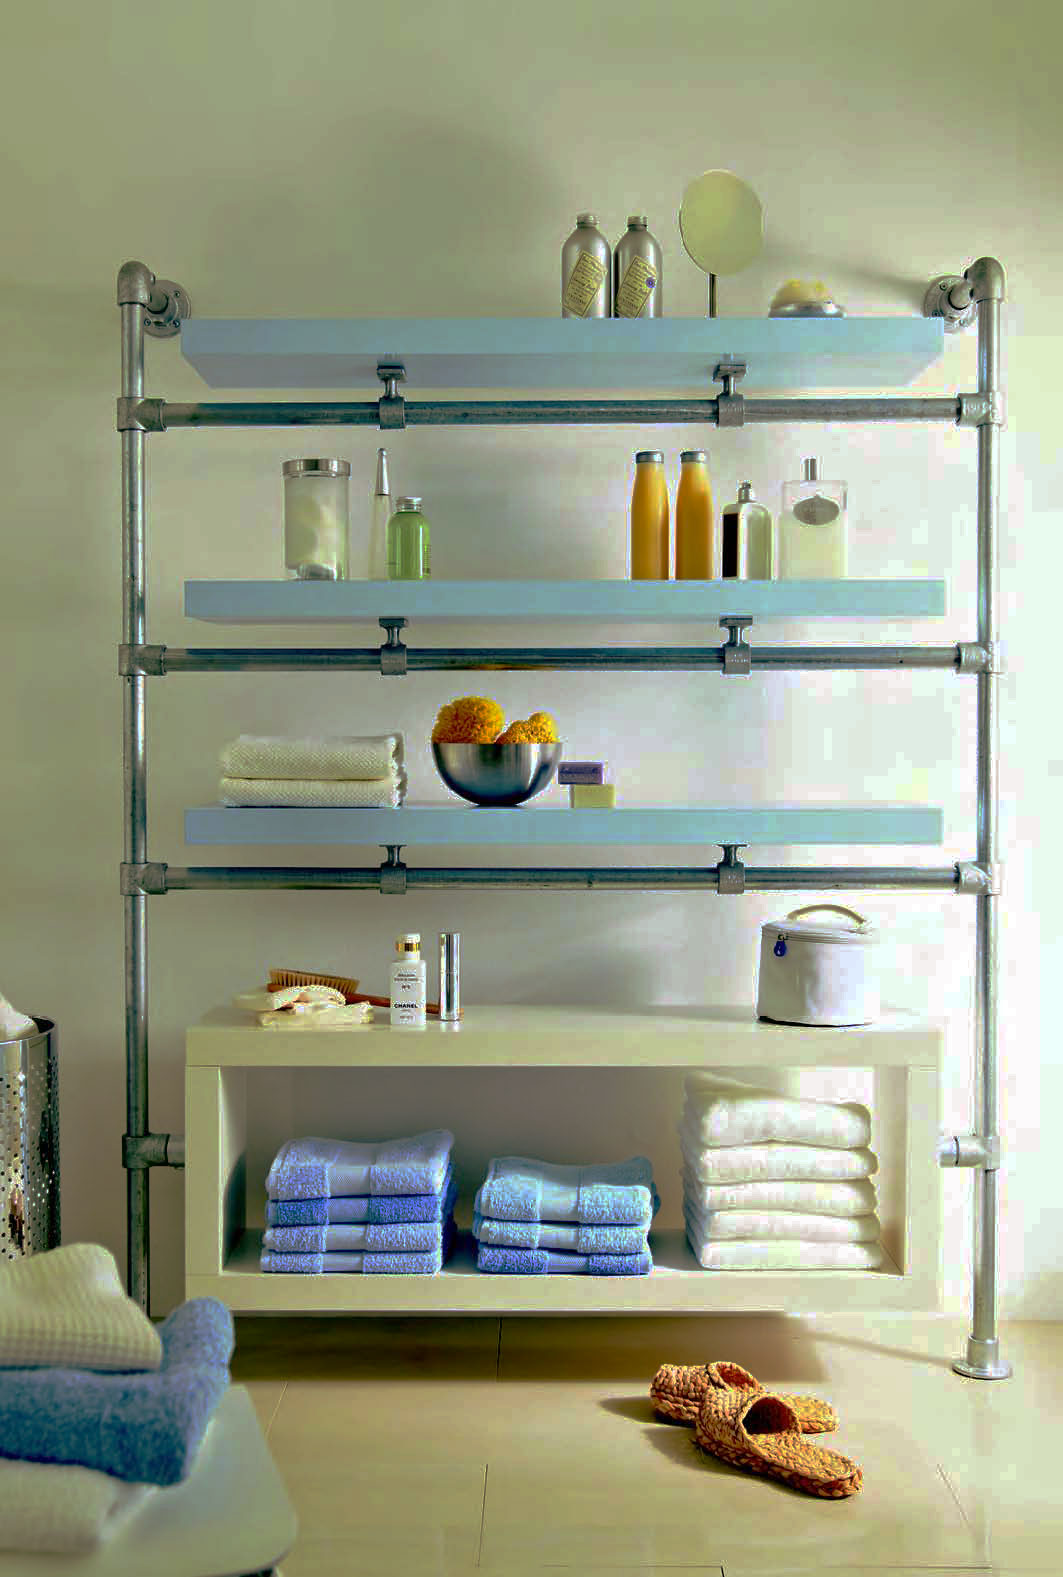 Floating bathroom shelf made with kee klamp and lack - Floating shelf ideas for bathroom ...